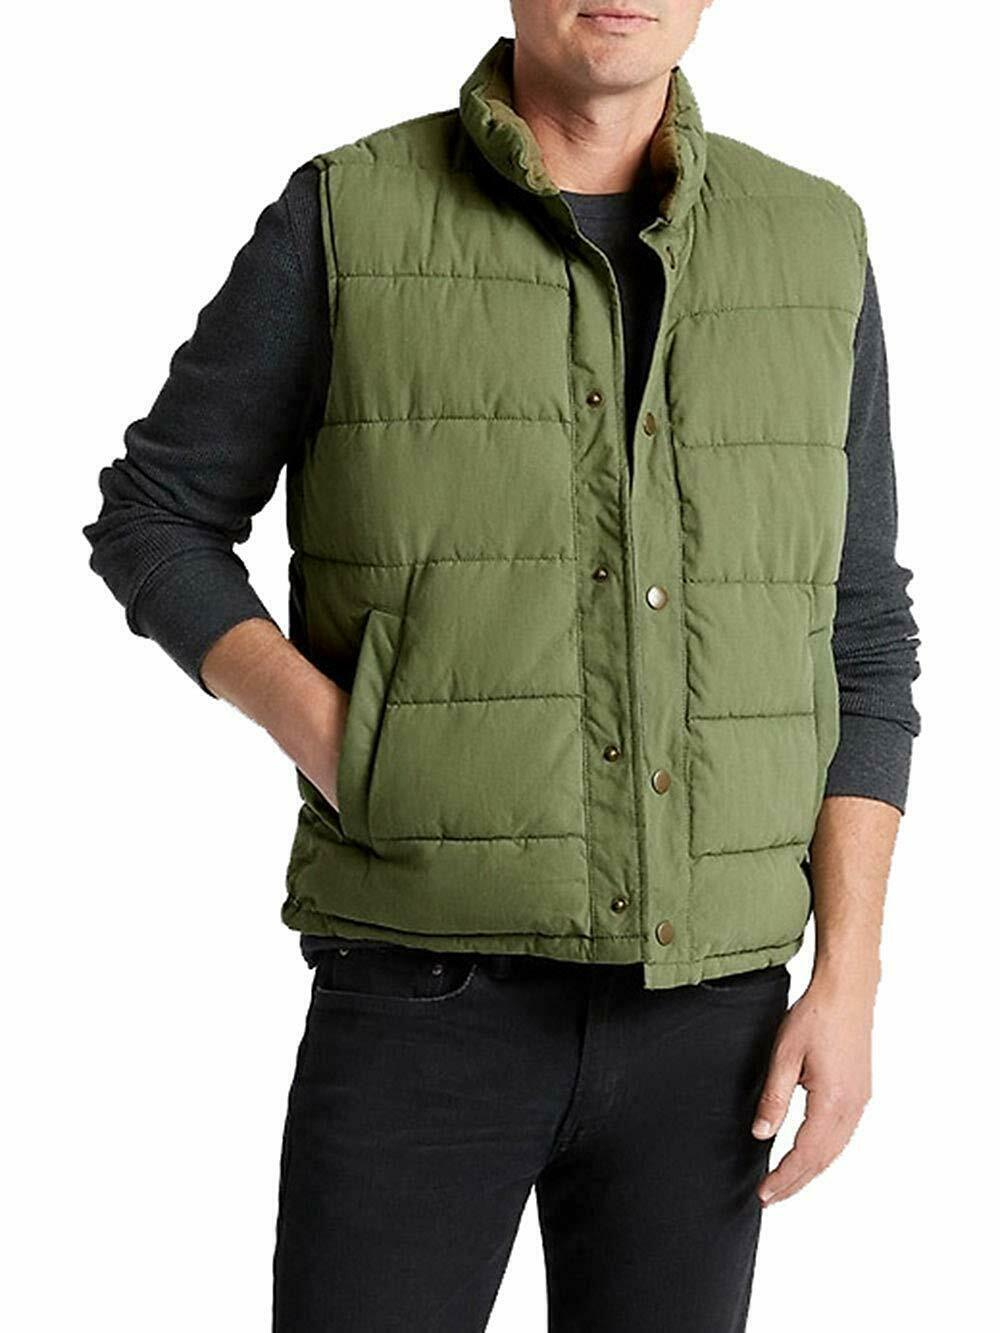 Primary image for Gap Mens Cactus Green Full Zip Warmest Puffer Vest Jacket Coat Small S 7615-5M